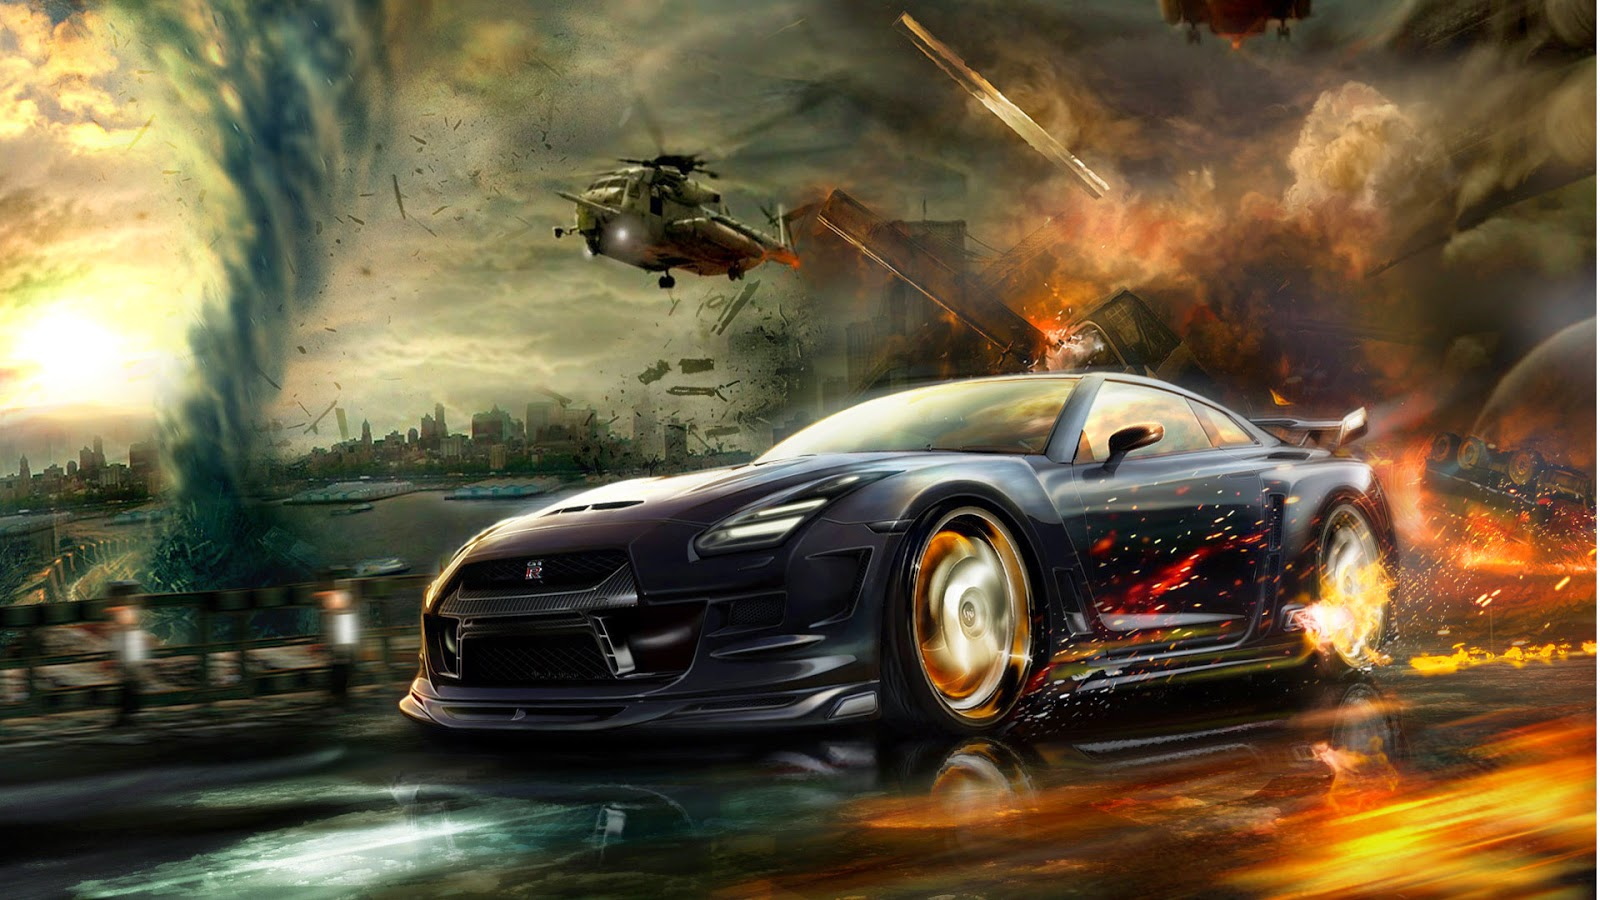 3d Car Wallpaper Amazing 3d Car Wallpaper Free Download Pitcher Wallpaper Hd